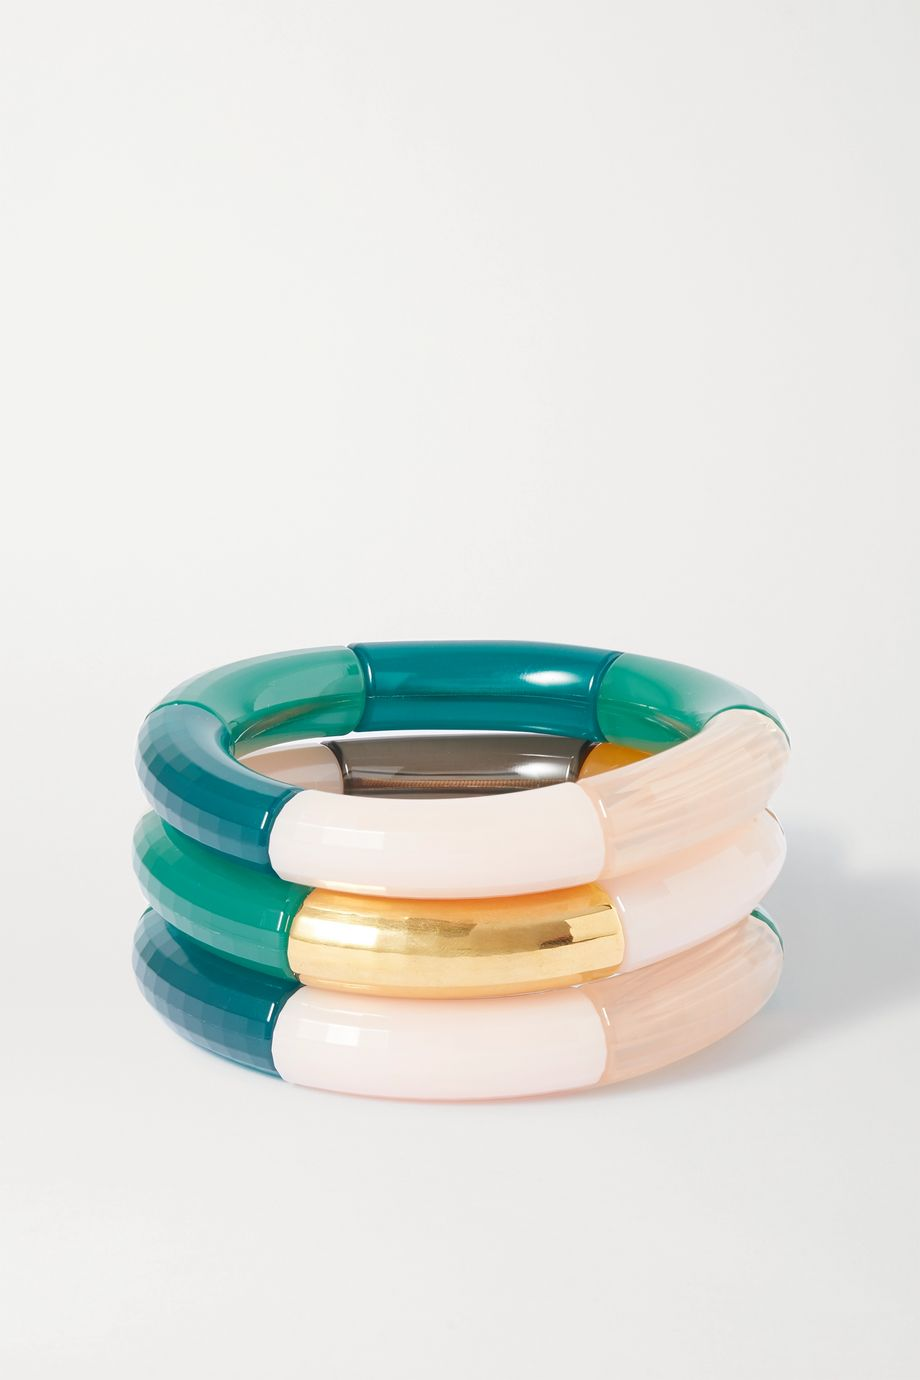 Kyoto Tango Breakaway and Luxemburg set of three resin and gold-plated bangles